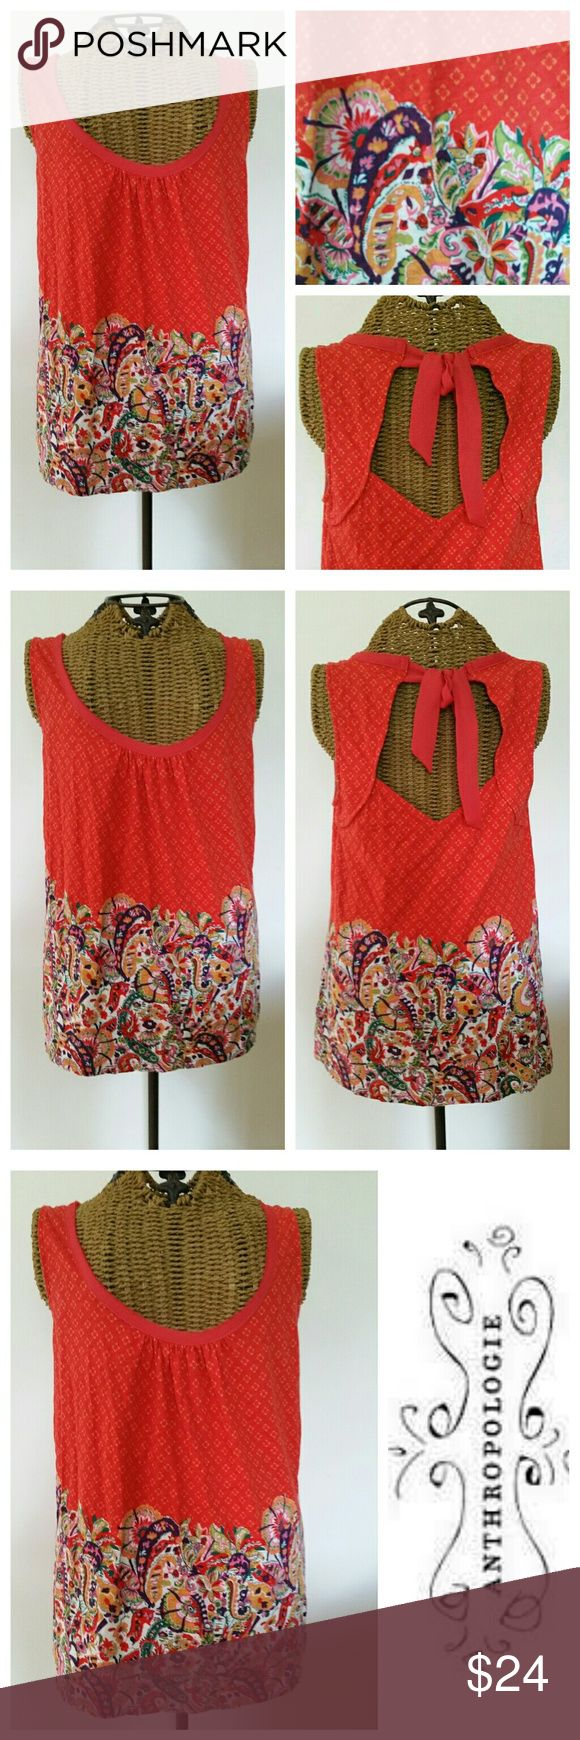 "AKEMI + KIN adorable bow tank top XS Adorable tank Sz XS Orange with cute paisley print Ties in back  Cotton Underarm to underarm 16.5"" Top of shoulder to 25.5"" Very good condition Anthropologie Tops Tank Tops"